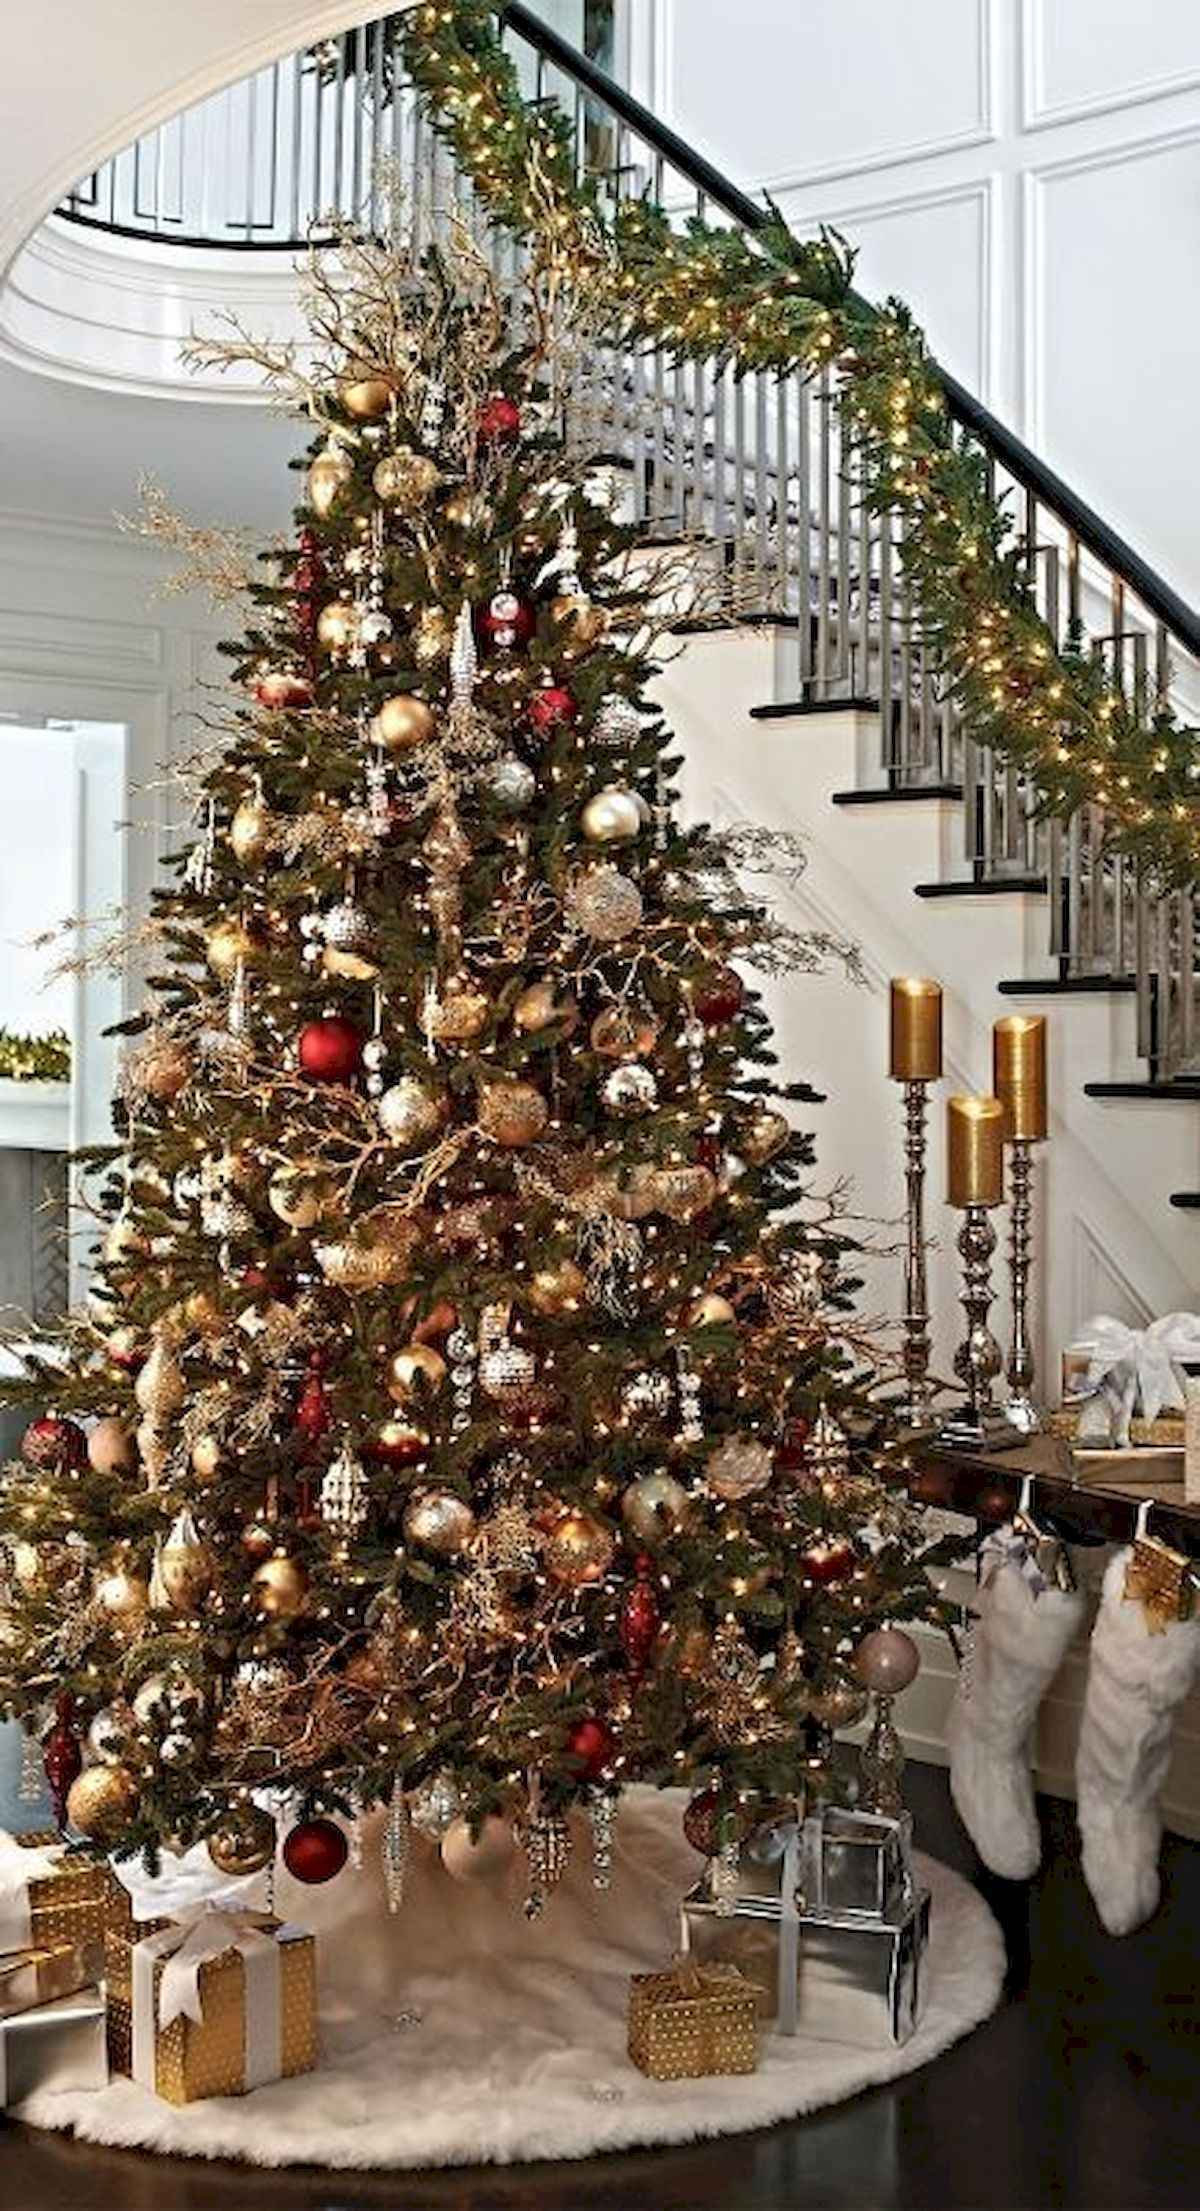 60 awesome christmas tree decorations ideas (25)